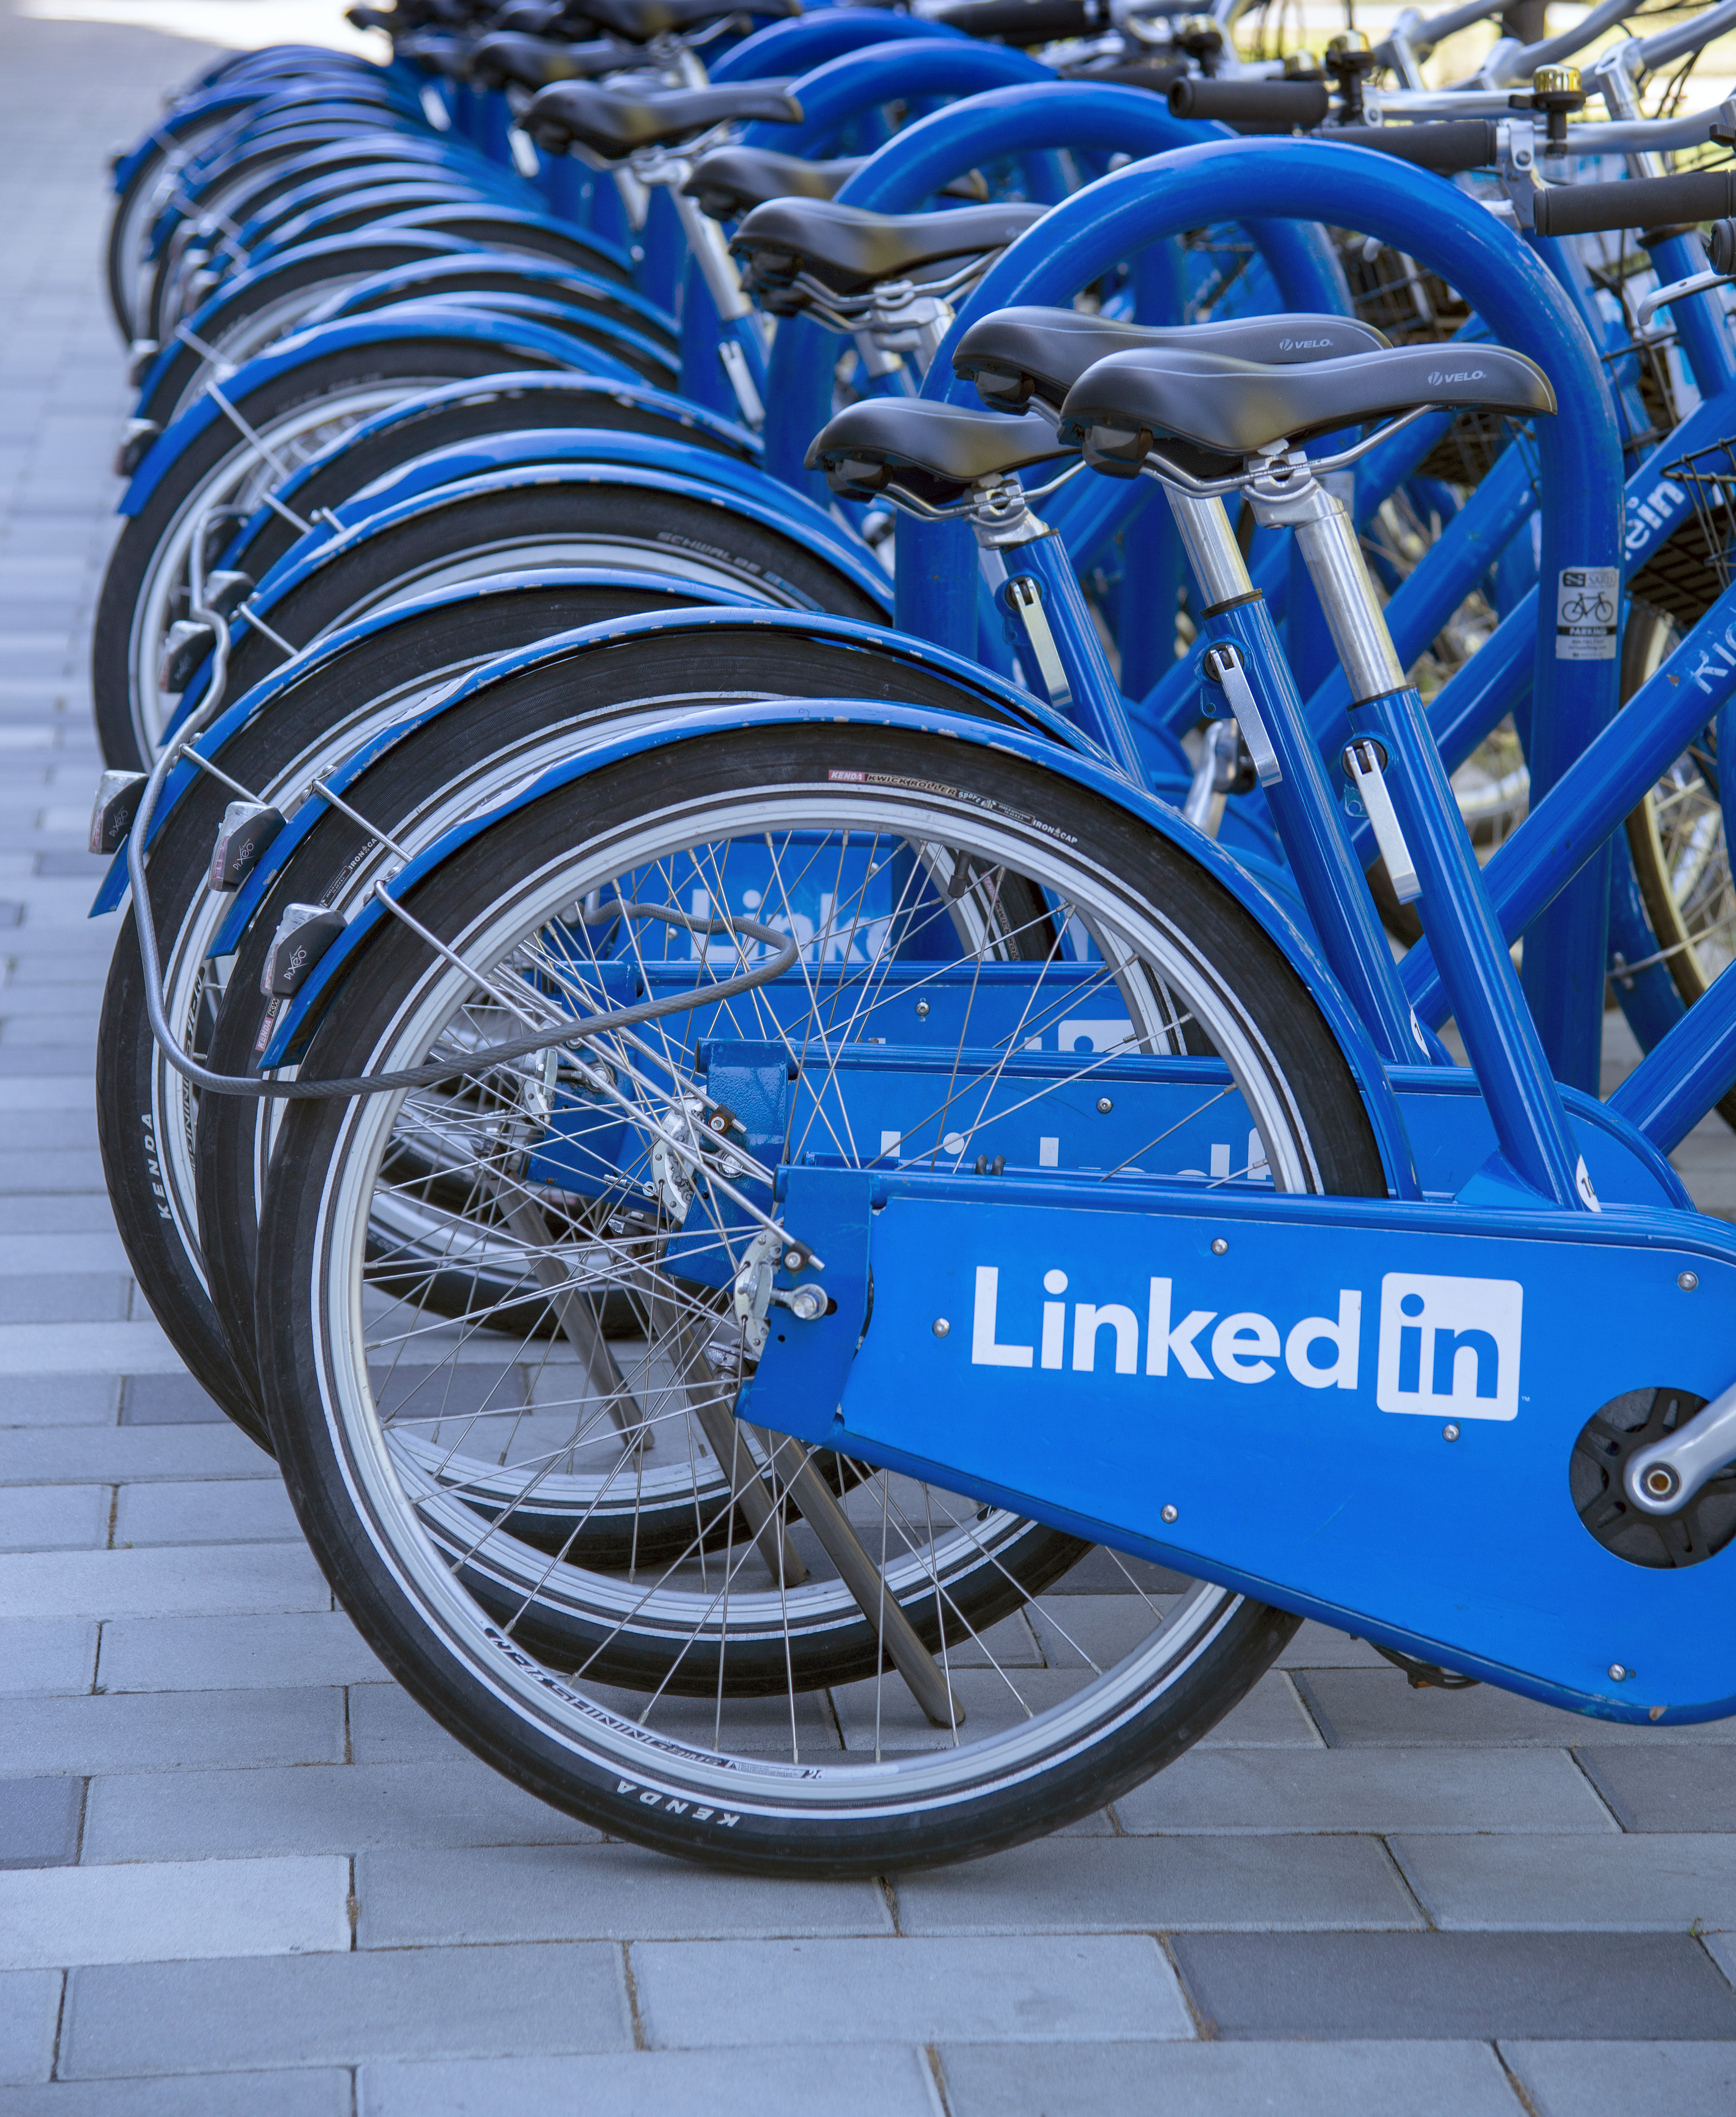 At the LinkedIn headquarters in Mountain View, California.